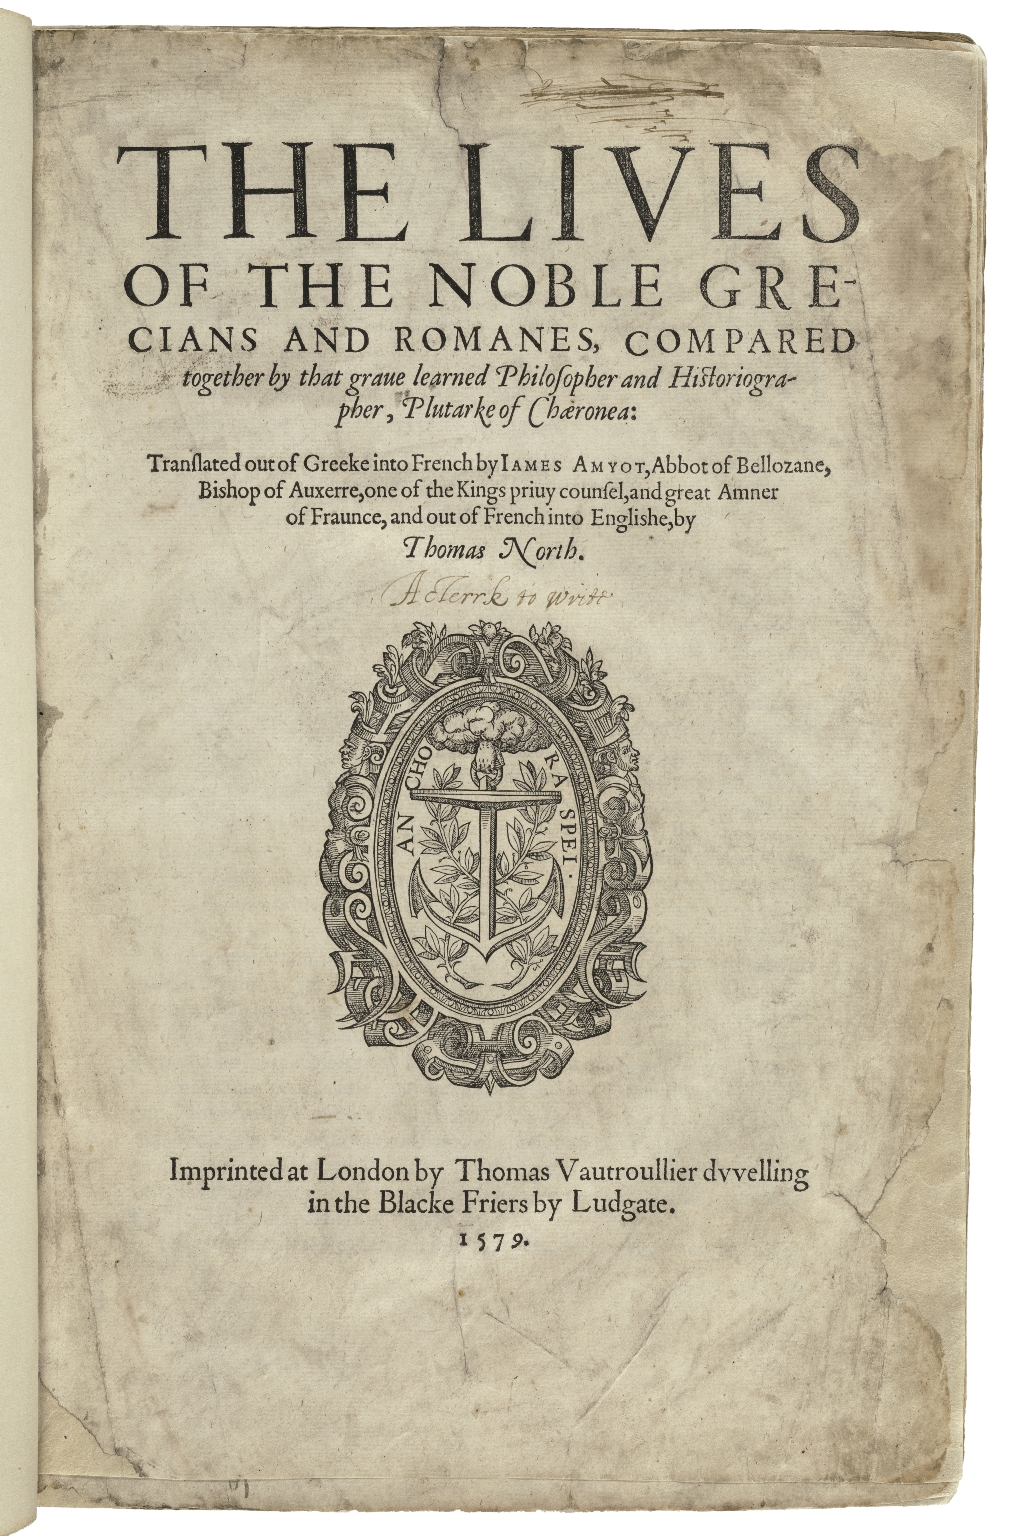 [Lives. English] The liues of the noble Grecians and Romanes, compared together by that graue learned philosopher and historiographer, Plutarke of Ch�ronea: translated out of Greeke into French by Iames Amyot, Abbot of Bellozane, Bishop of Auxerre, one of the Kings priuy counsel, and great Amner of Fraunce, and out of French into Englishe, by Thomas North.